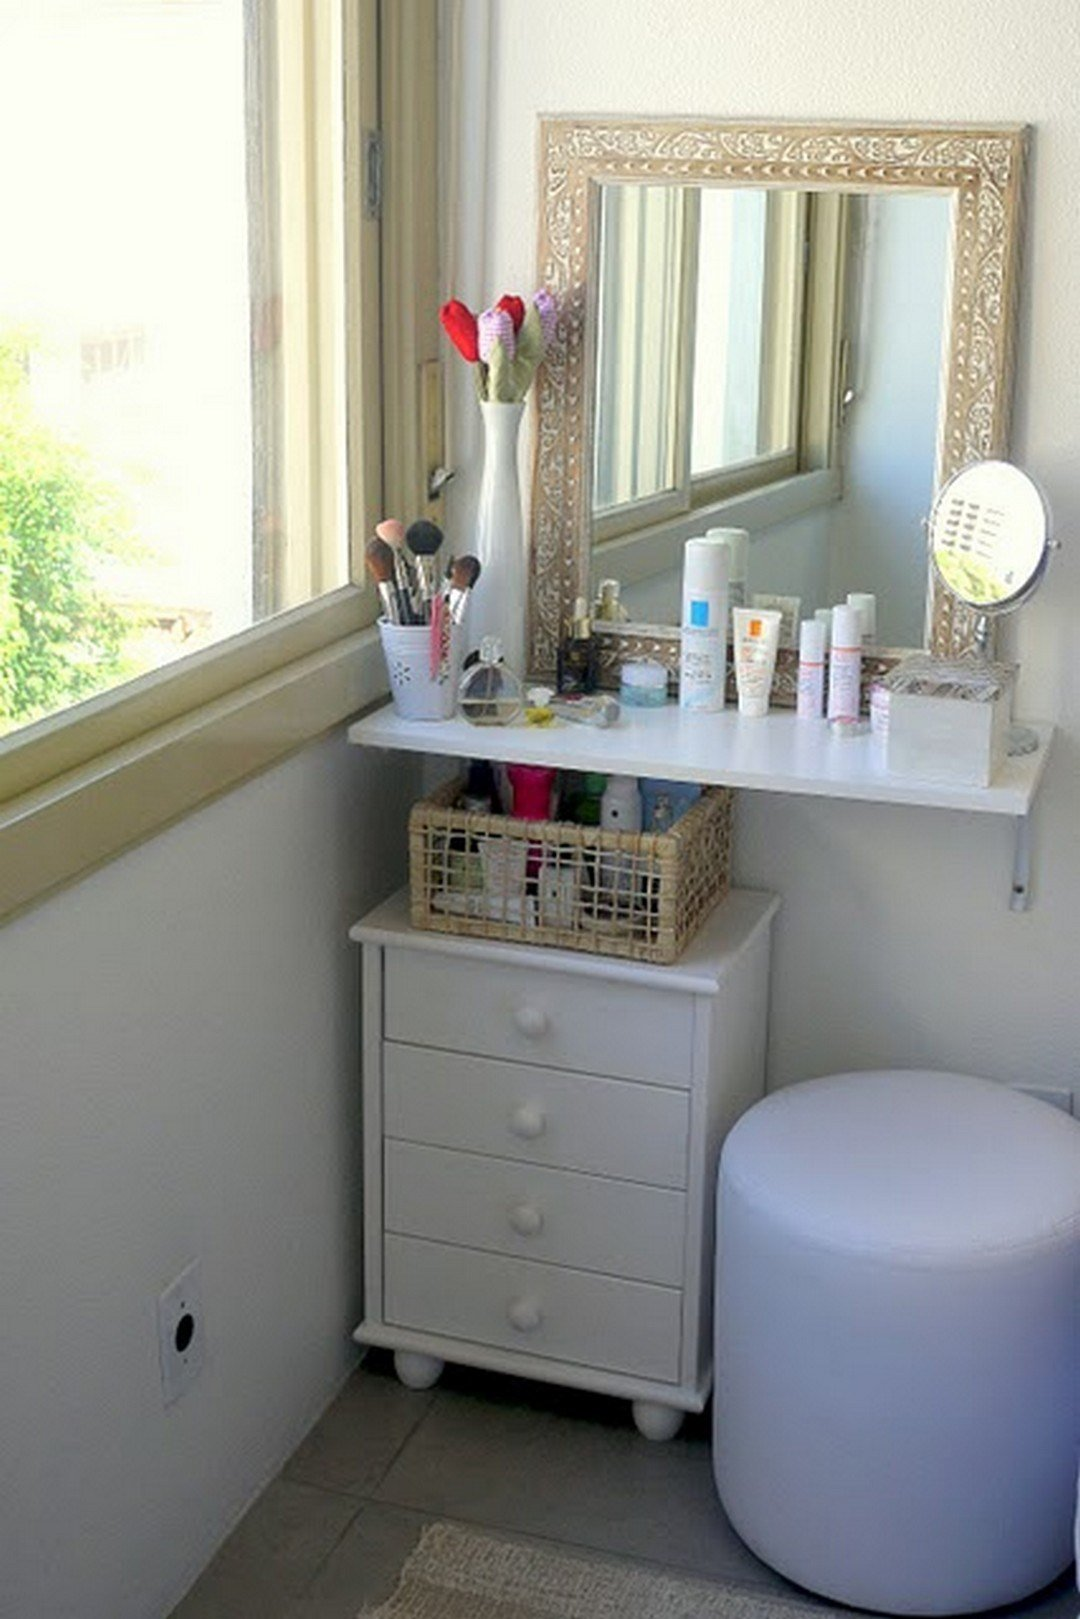 Best Easy Diy Small Bedroom Organization And Storage Hacks 19 With Pictures